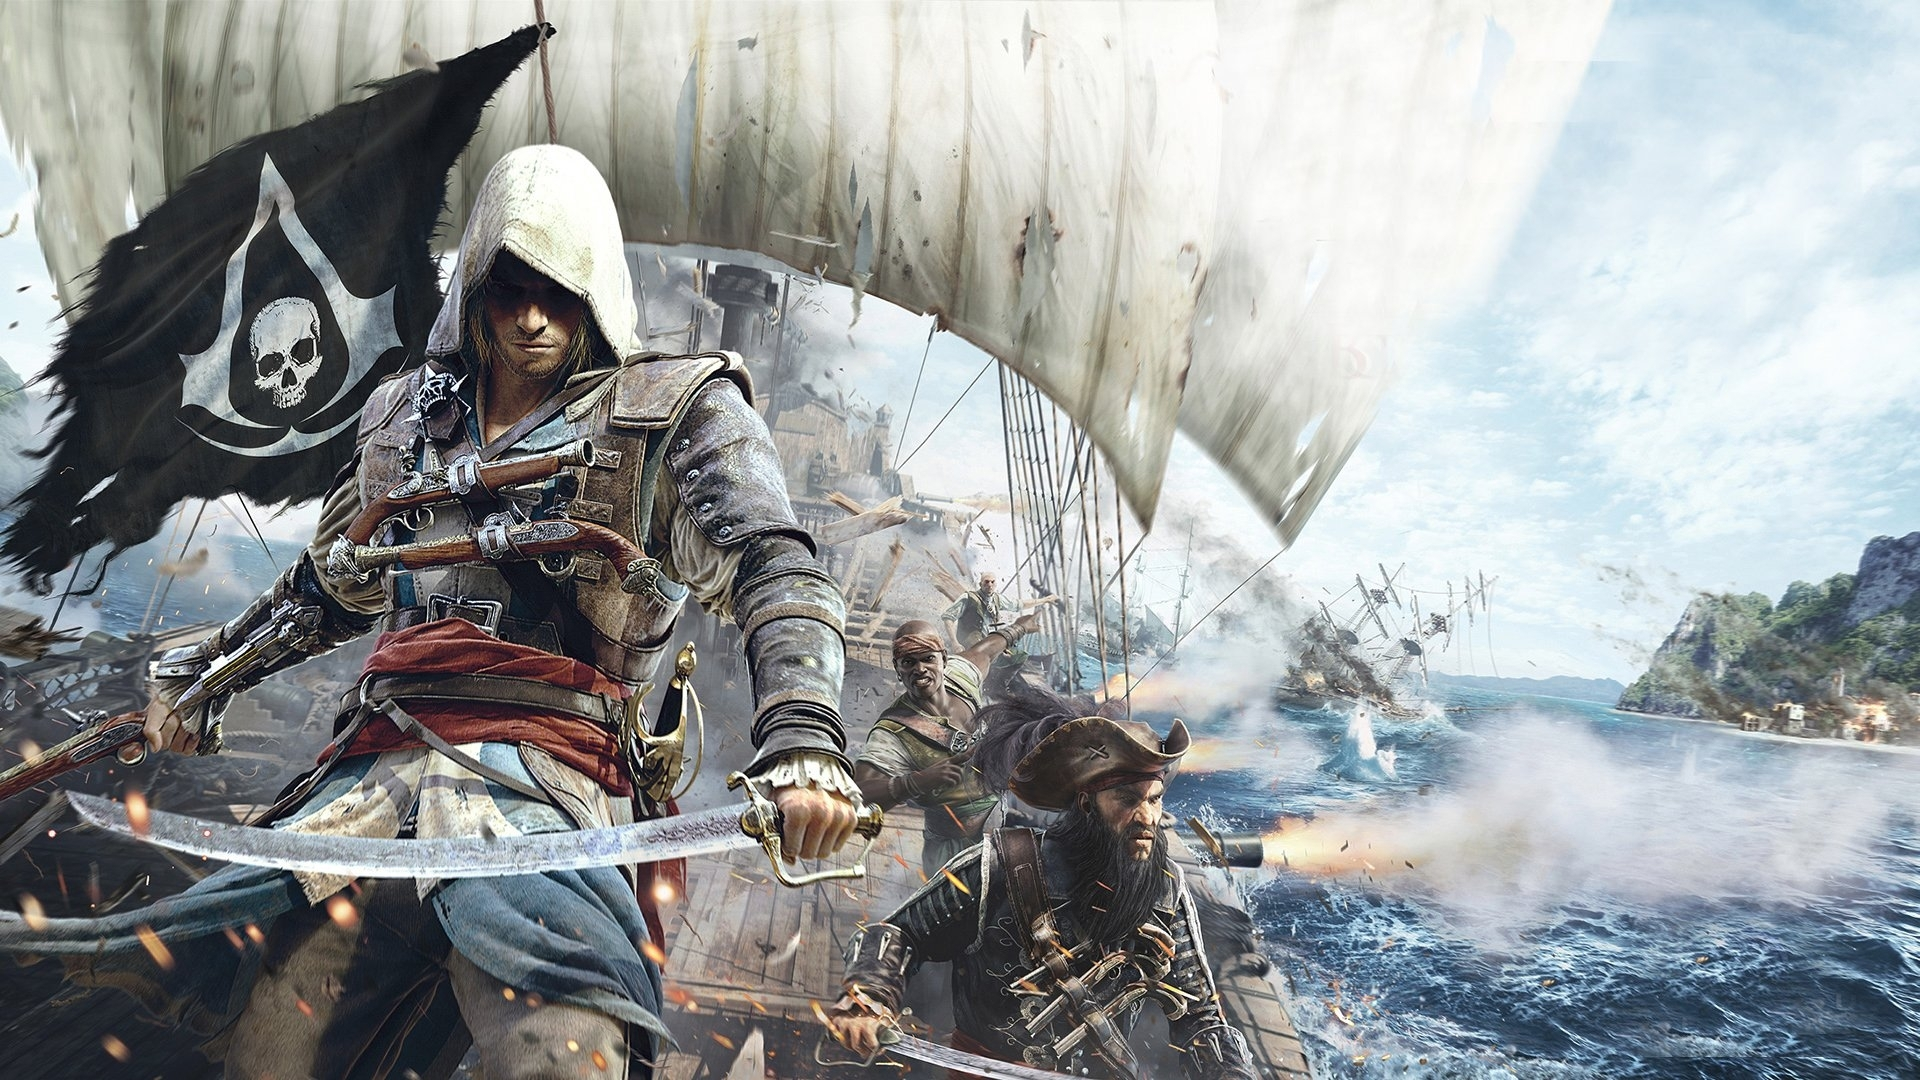 124 assassin's creed iv: black flag fonds d'écran hd | arrière-plans